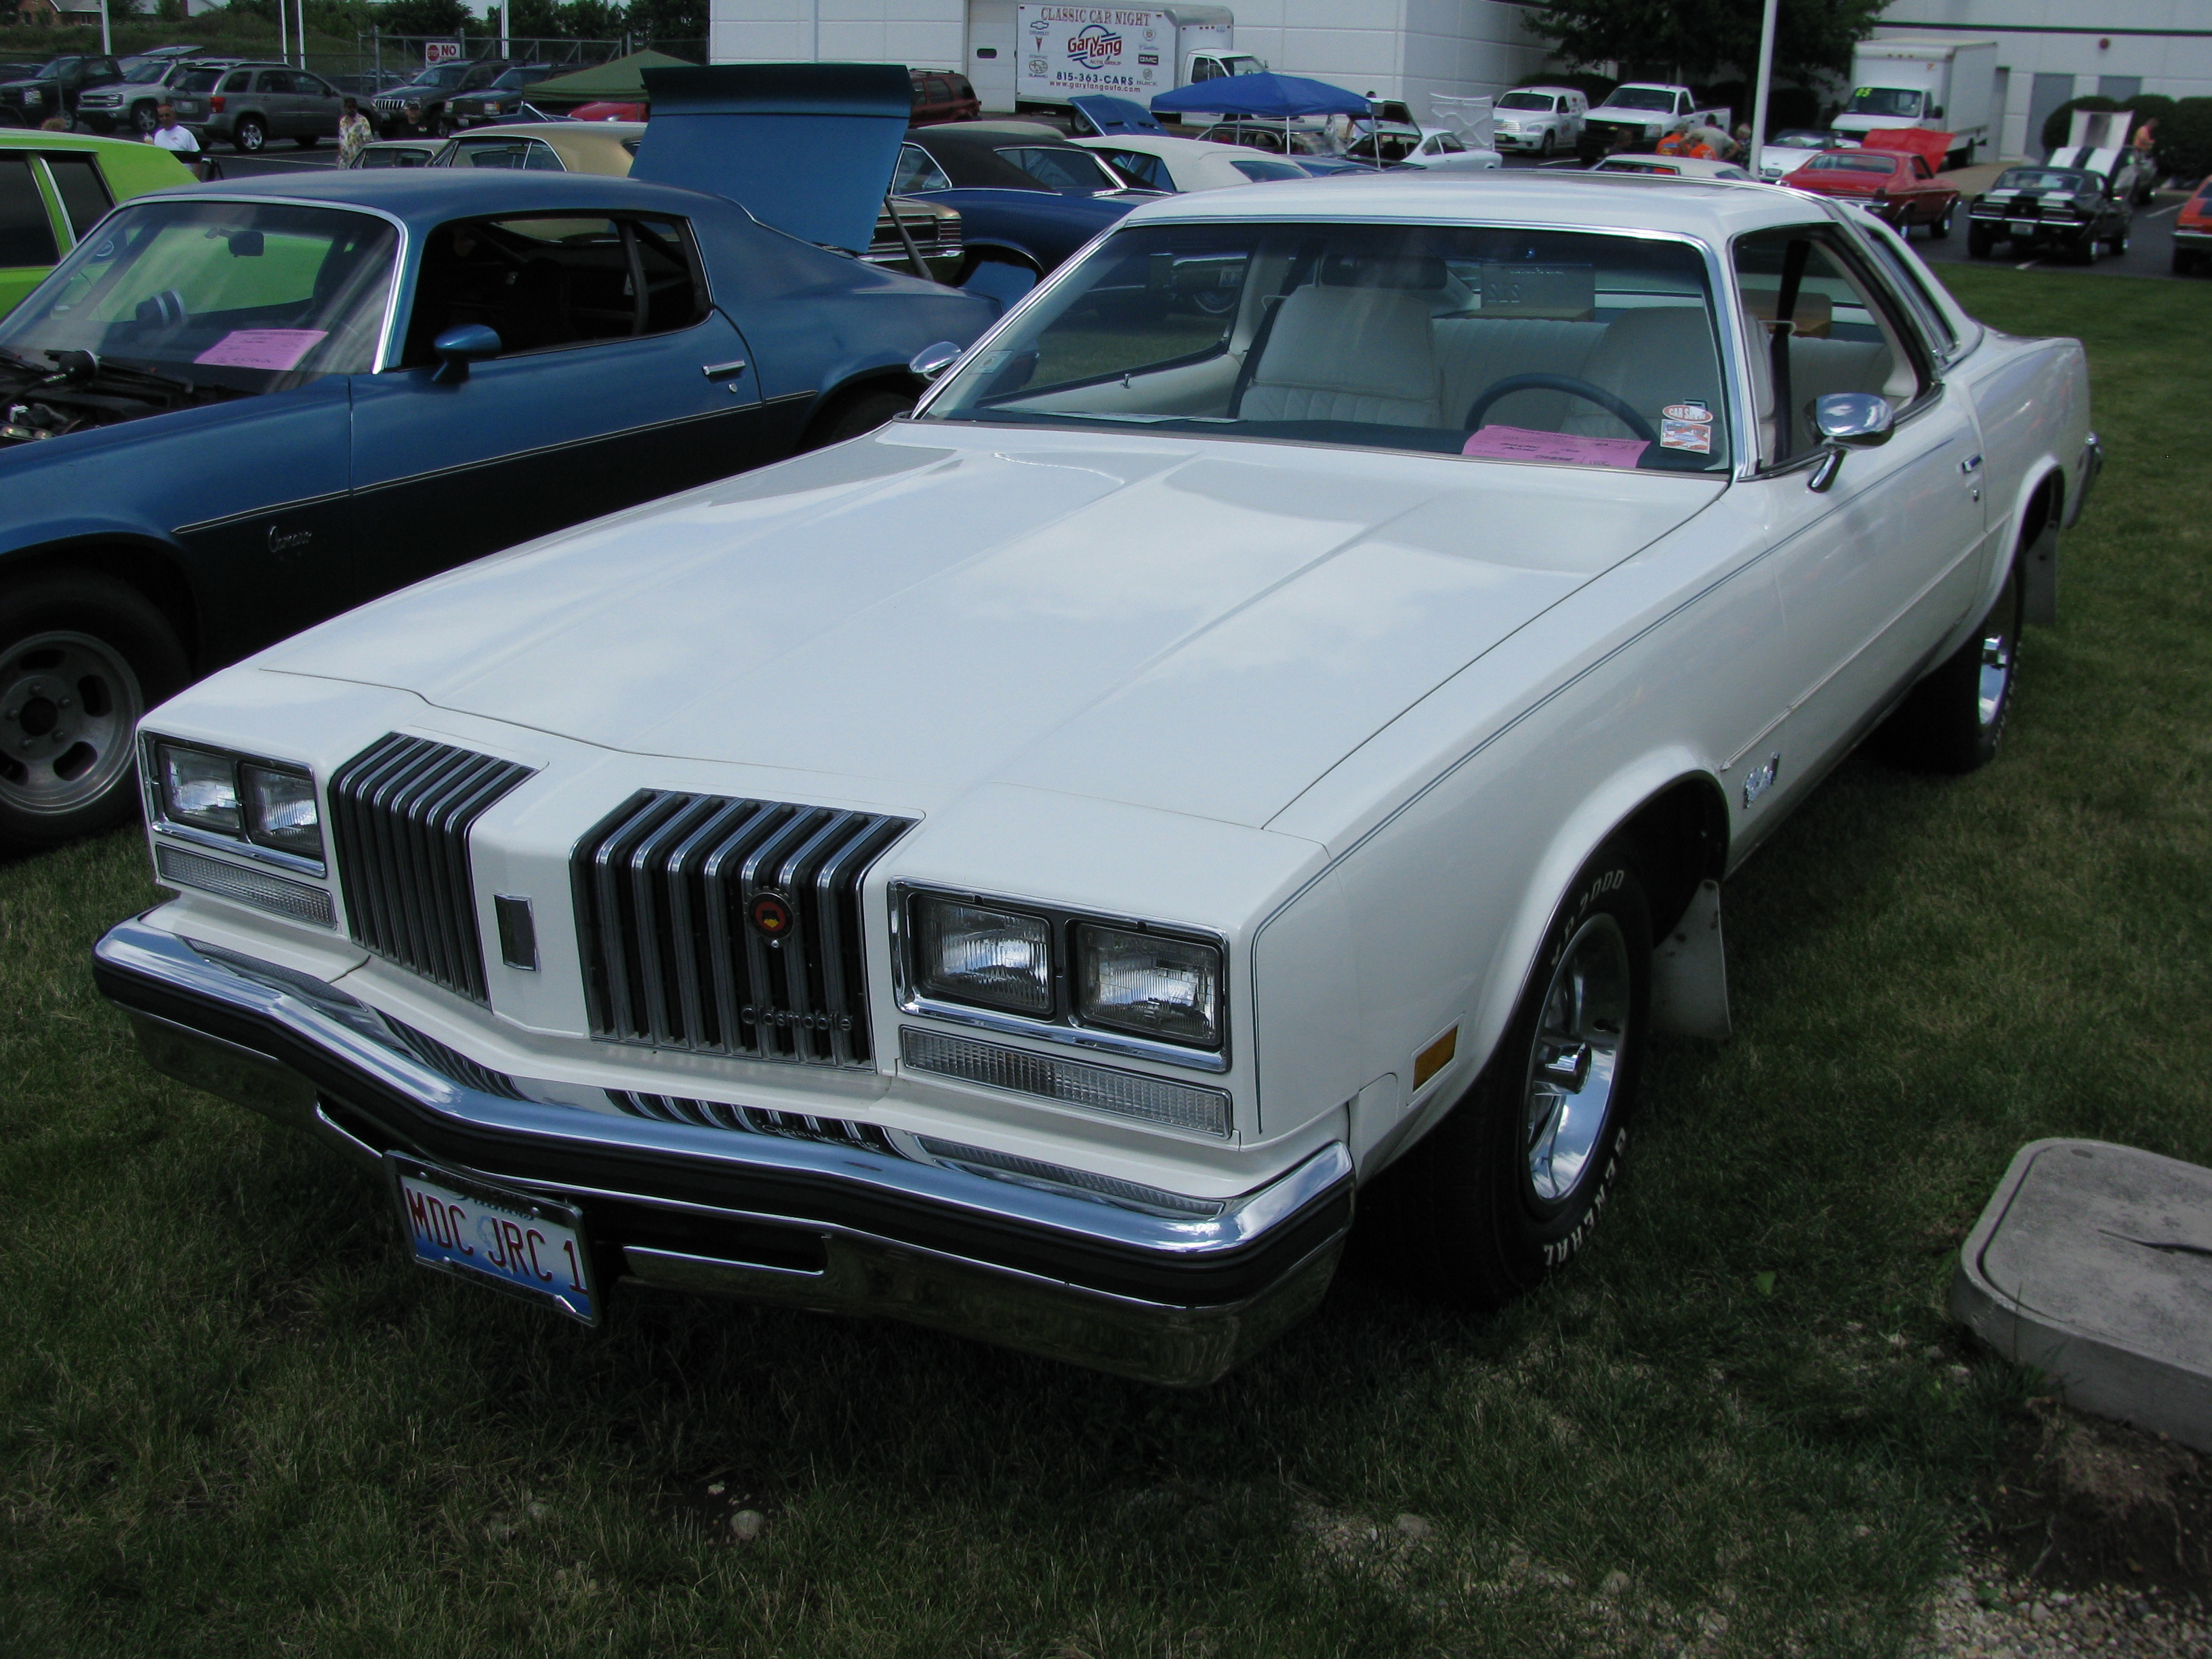 Oldsmobile Cutlass - The Crittenden Automotive Library